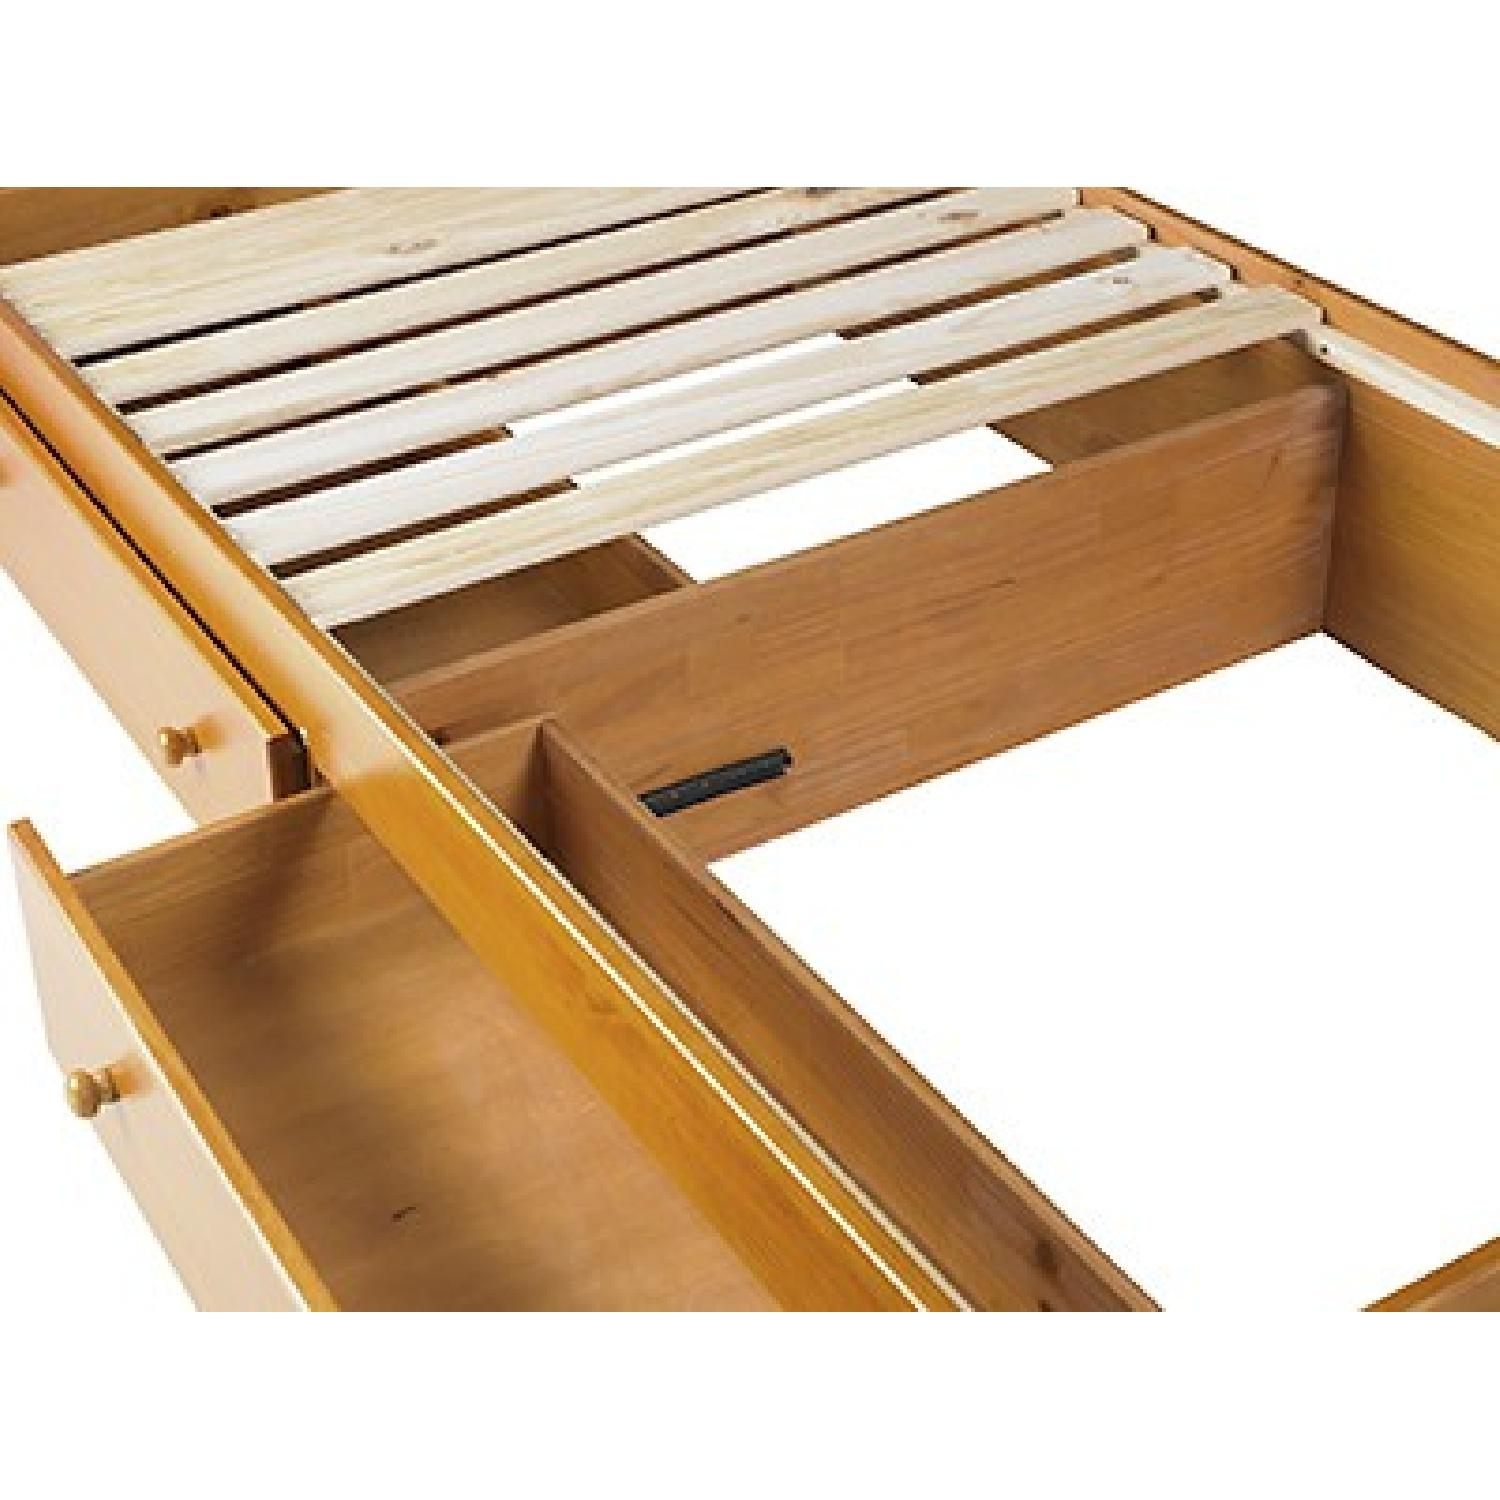 Full Size Solid Wood Bed in Java Finish w/ Storage Drawers - image-4